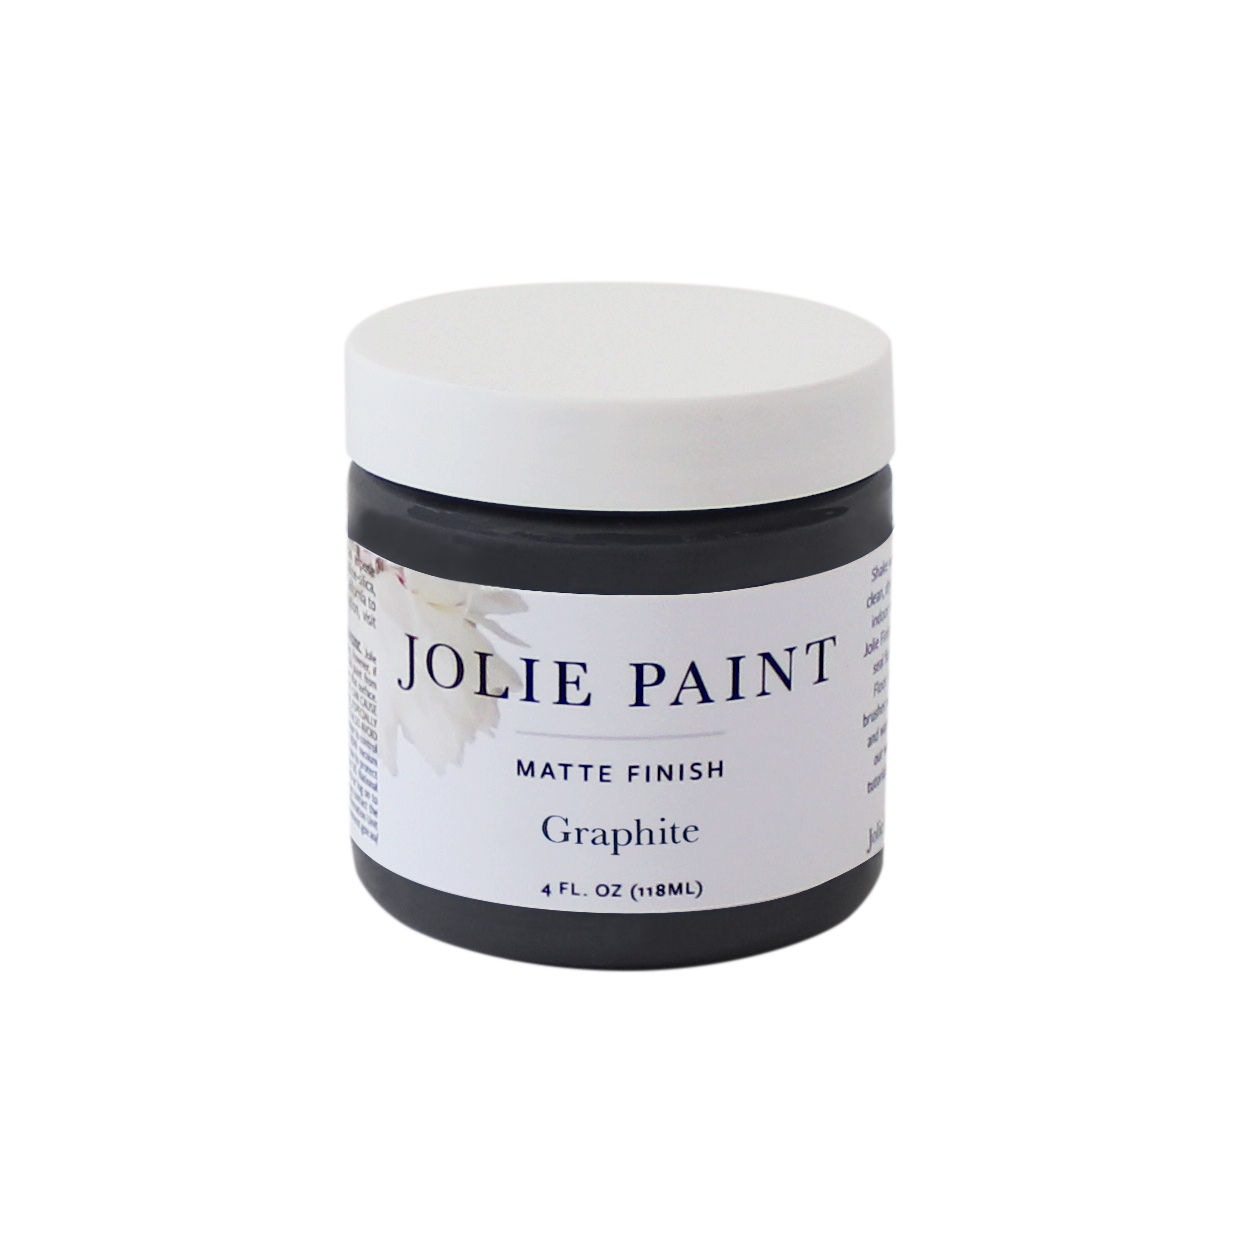 Graphite - Jolie Paint (s)